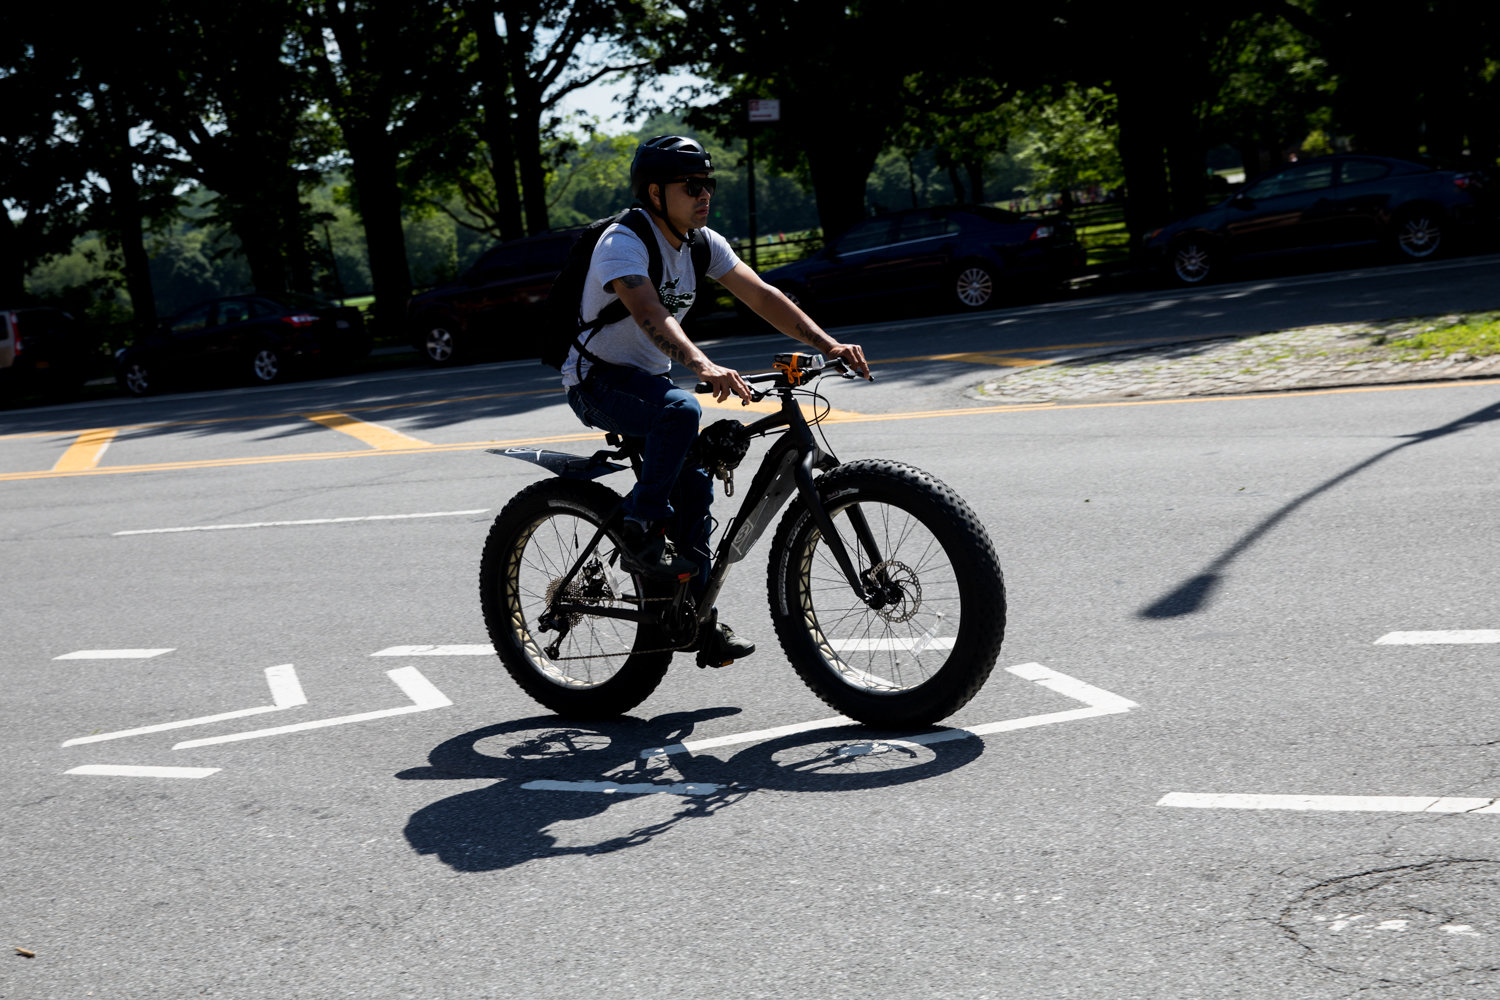 A cyclist rides south on Broadway in a bike lane. Alternative transportation advocate Eben Weiss is glad bicycle lanes have come to Broadway, but laments the fact they don't connect to a wider network of bus lanes, making it difficult for people who want to use them.